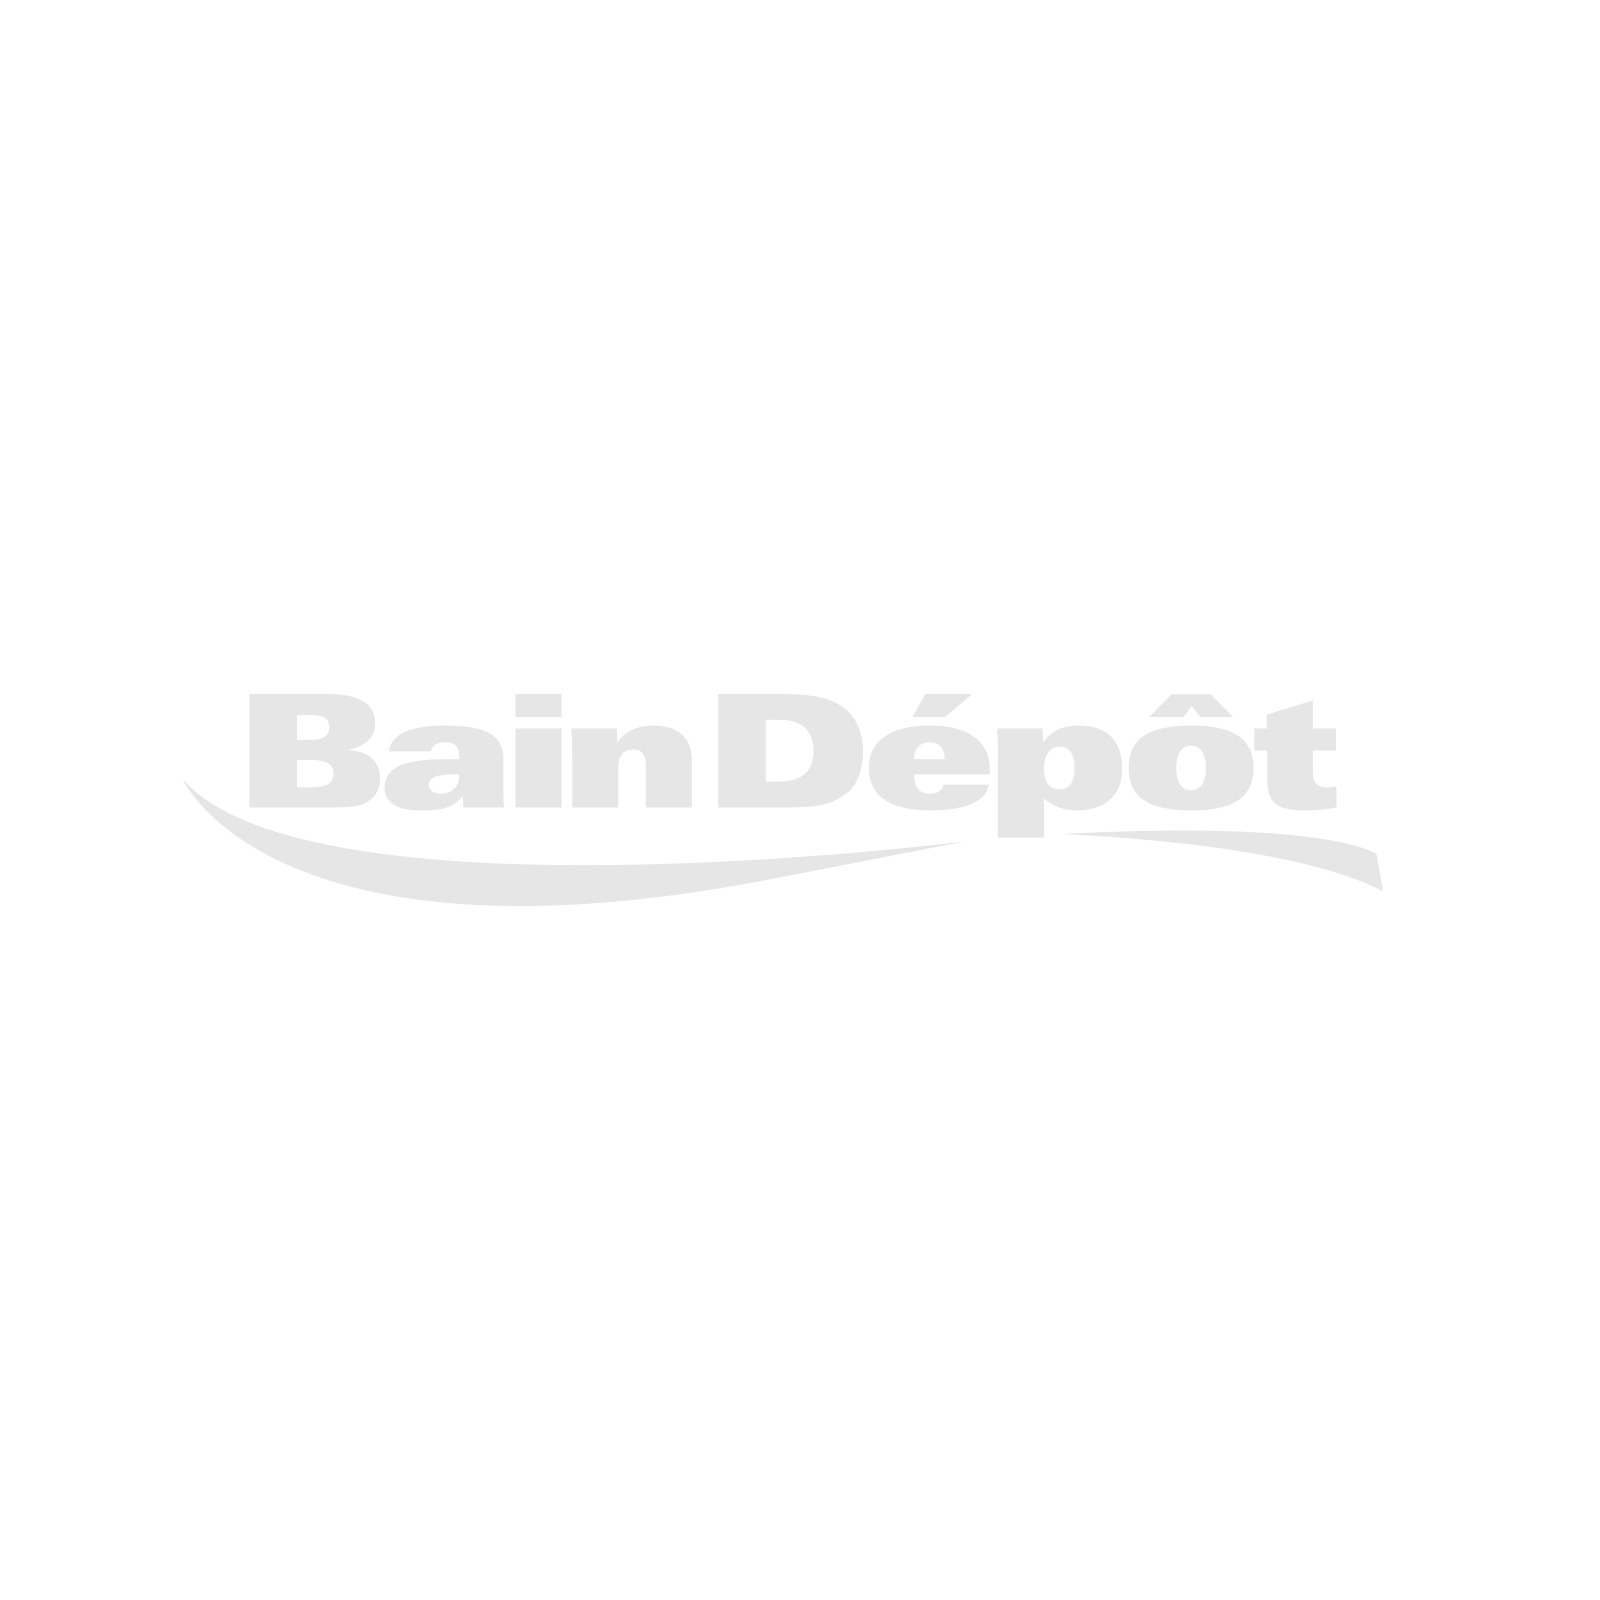 "24"" x 24"" x 30"" One-door wall kitchen cabinet"